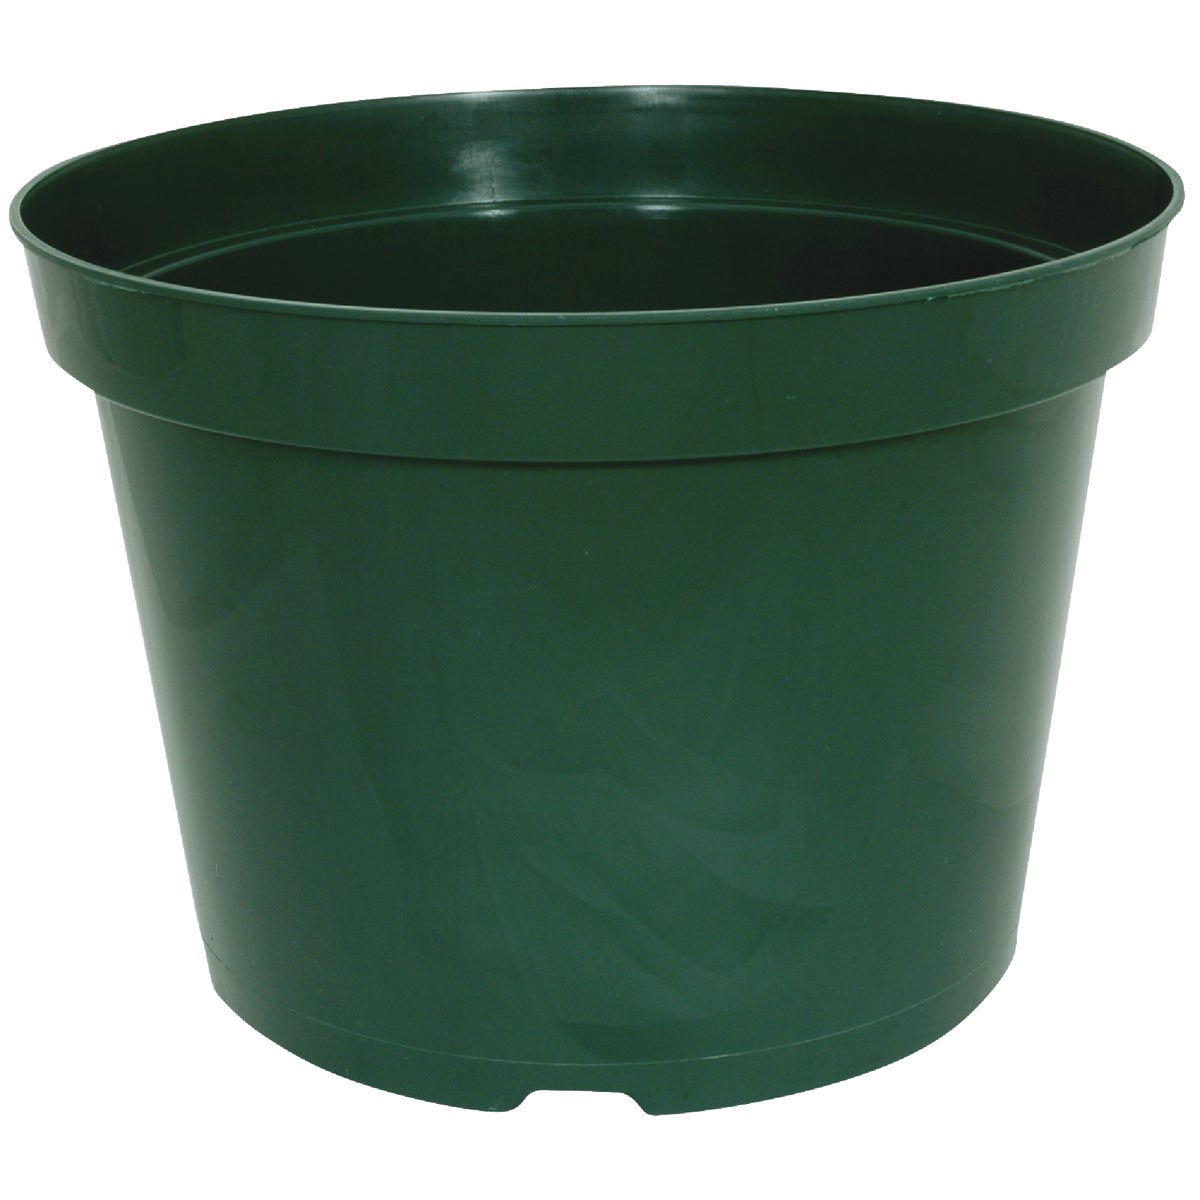 "8"" GREEN GROWER POT"